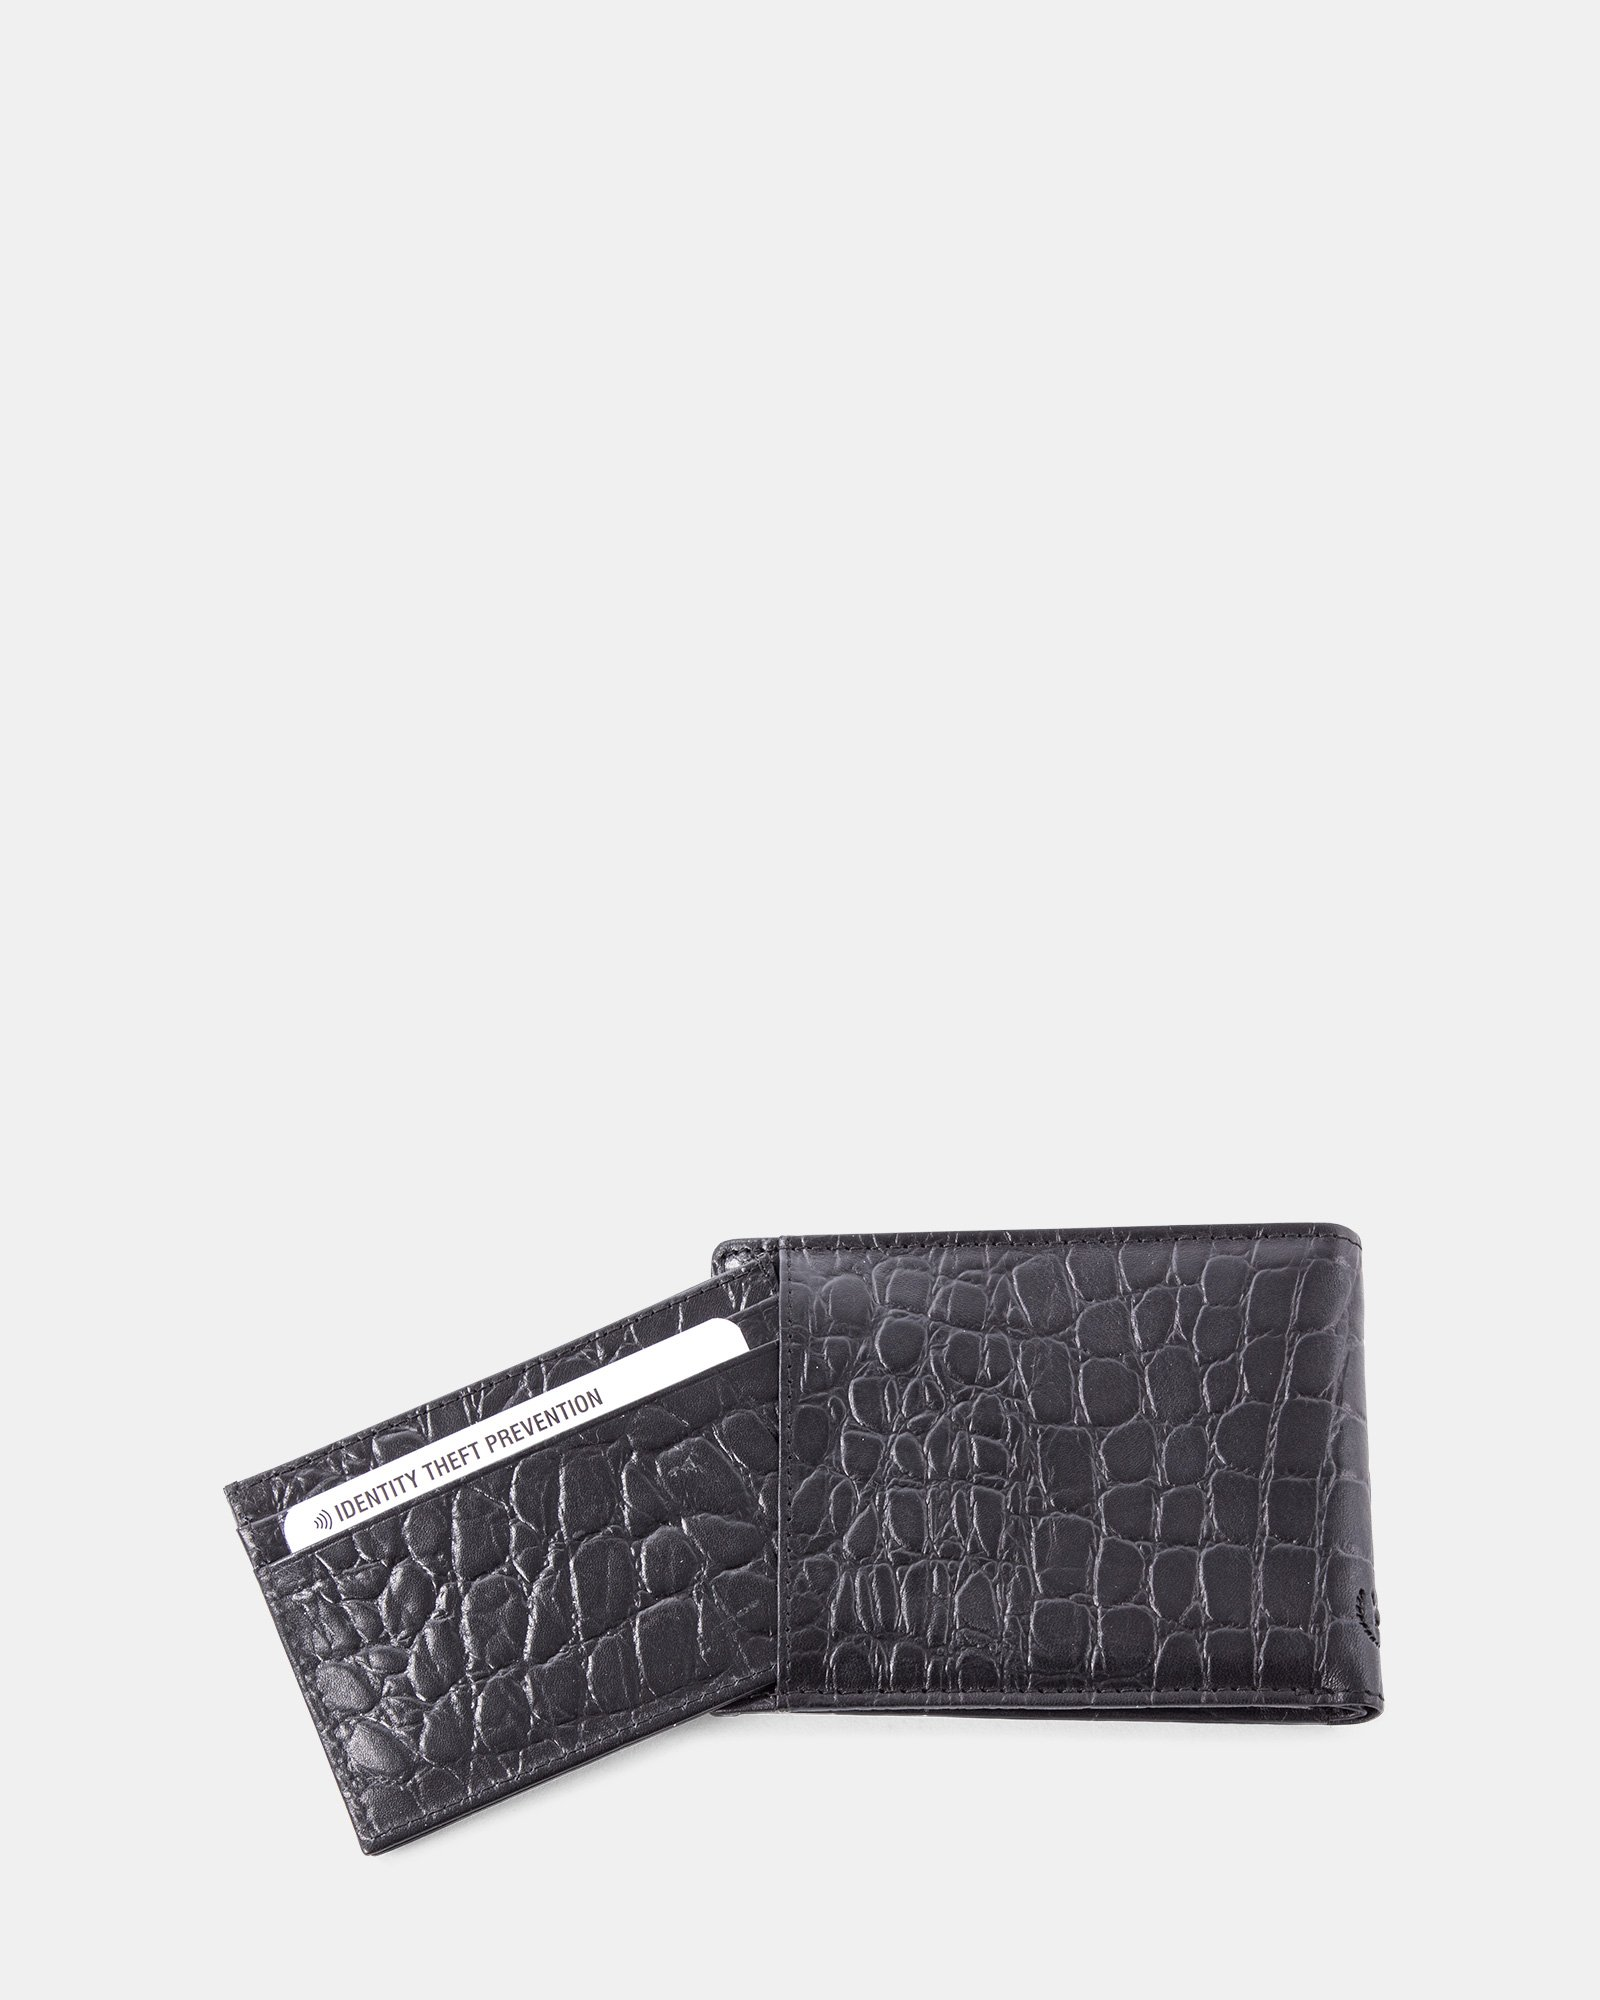 Bugatti -  Croco look Leather wallet with Anti-thef protection - Black - Bugatti - Zoom